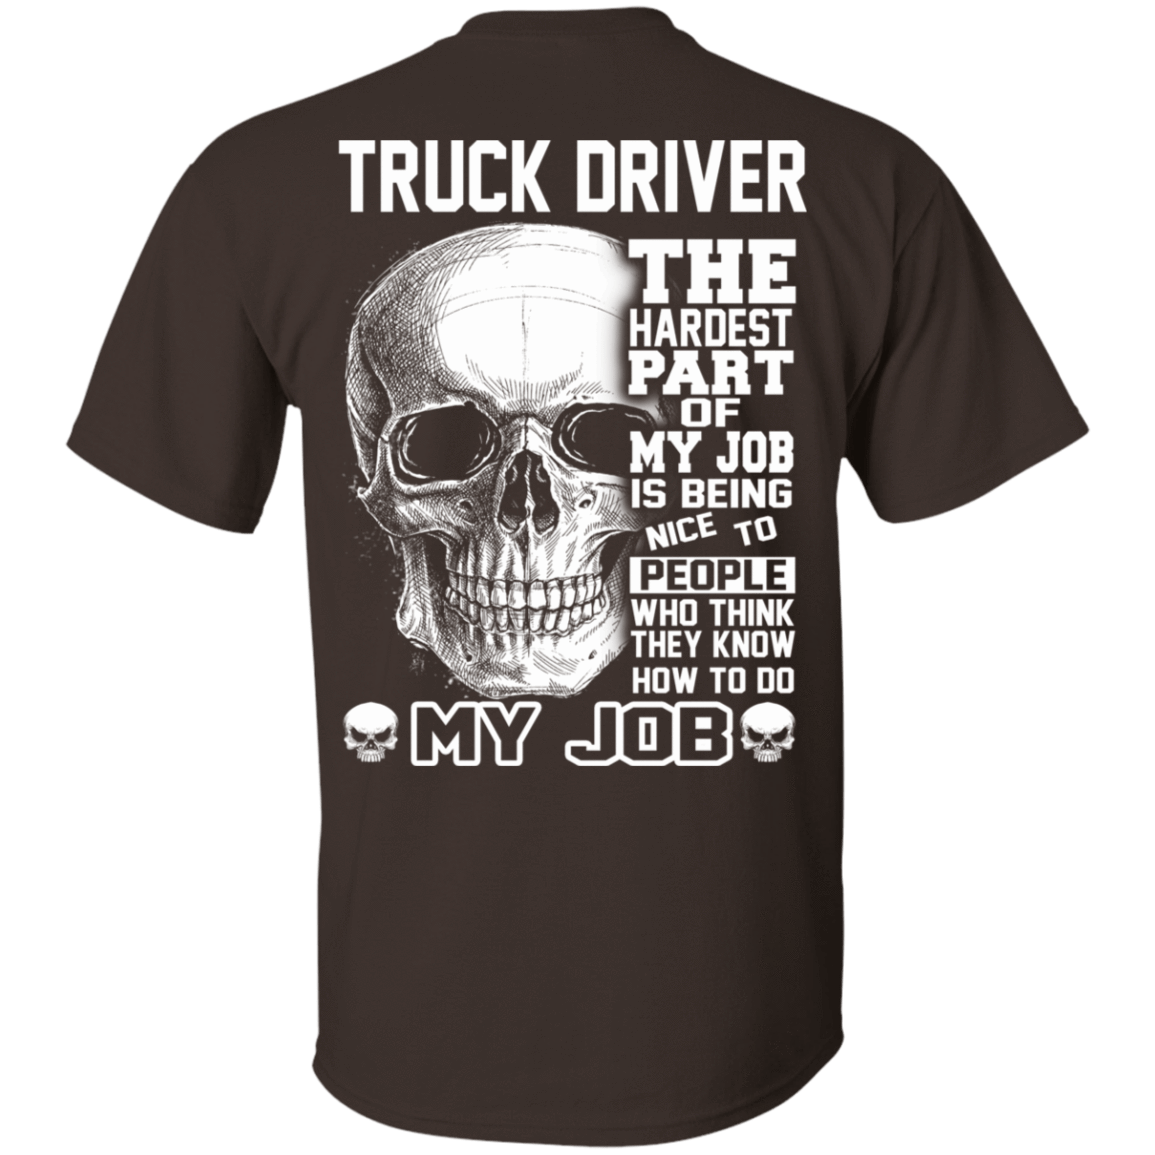 Truck Driver The Hardest Part Of My Job 22-2283-71881728-12087 - Tee Ript